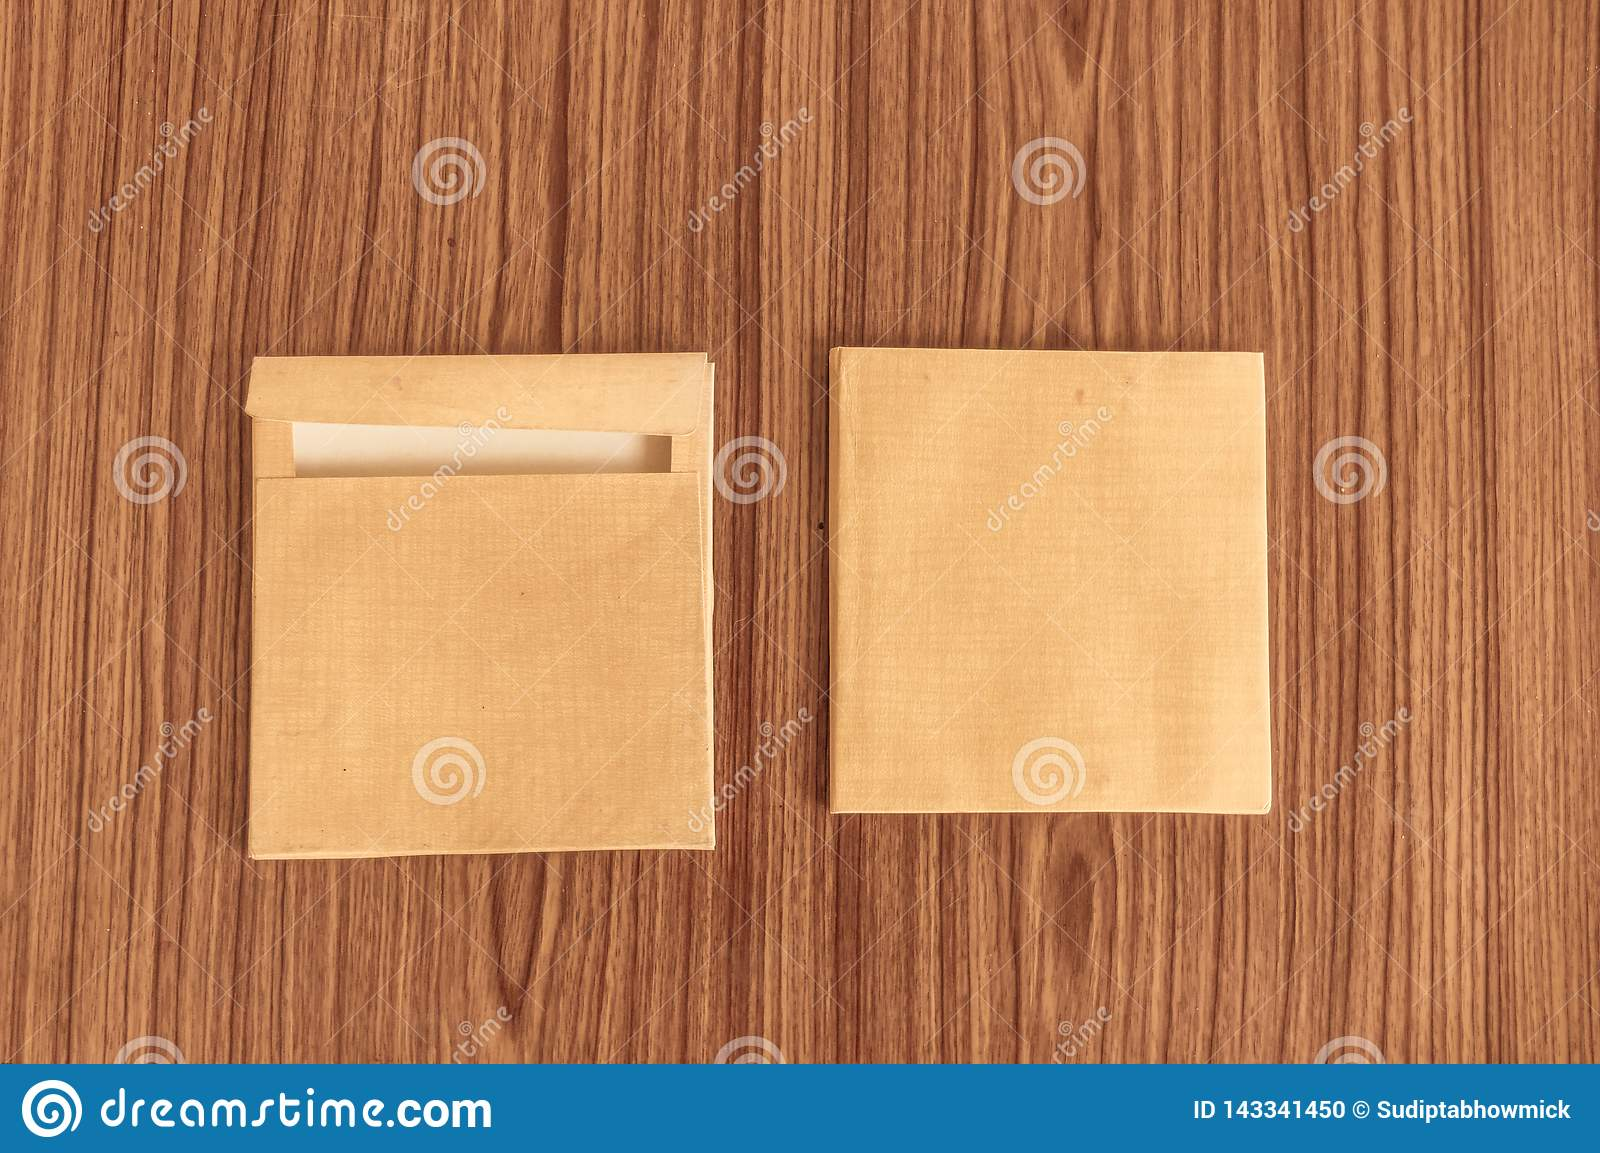 Set of two Brown envelope front and back isolated on wooden table hardwood floor background. Business cards blank. Mockup. Top